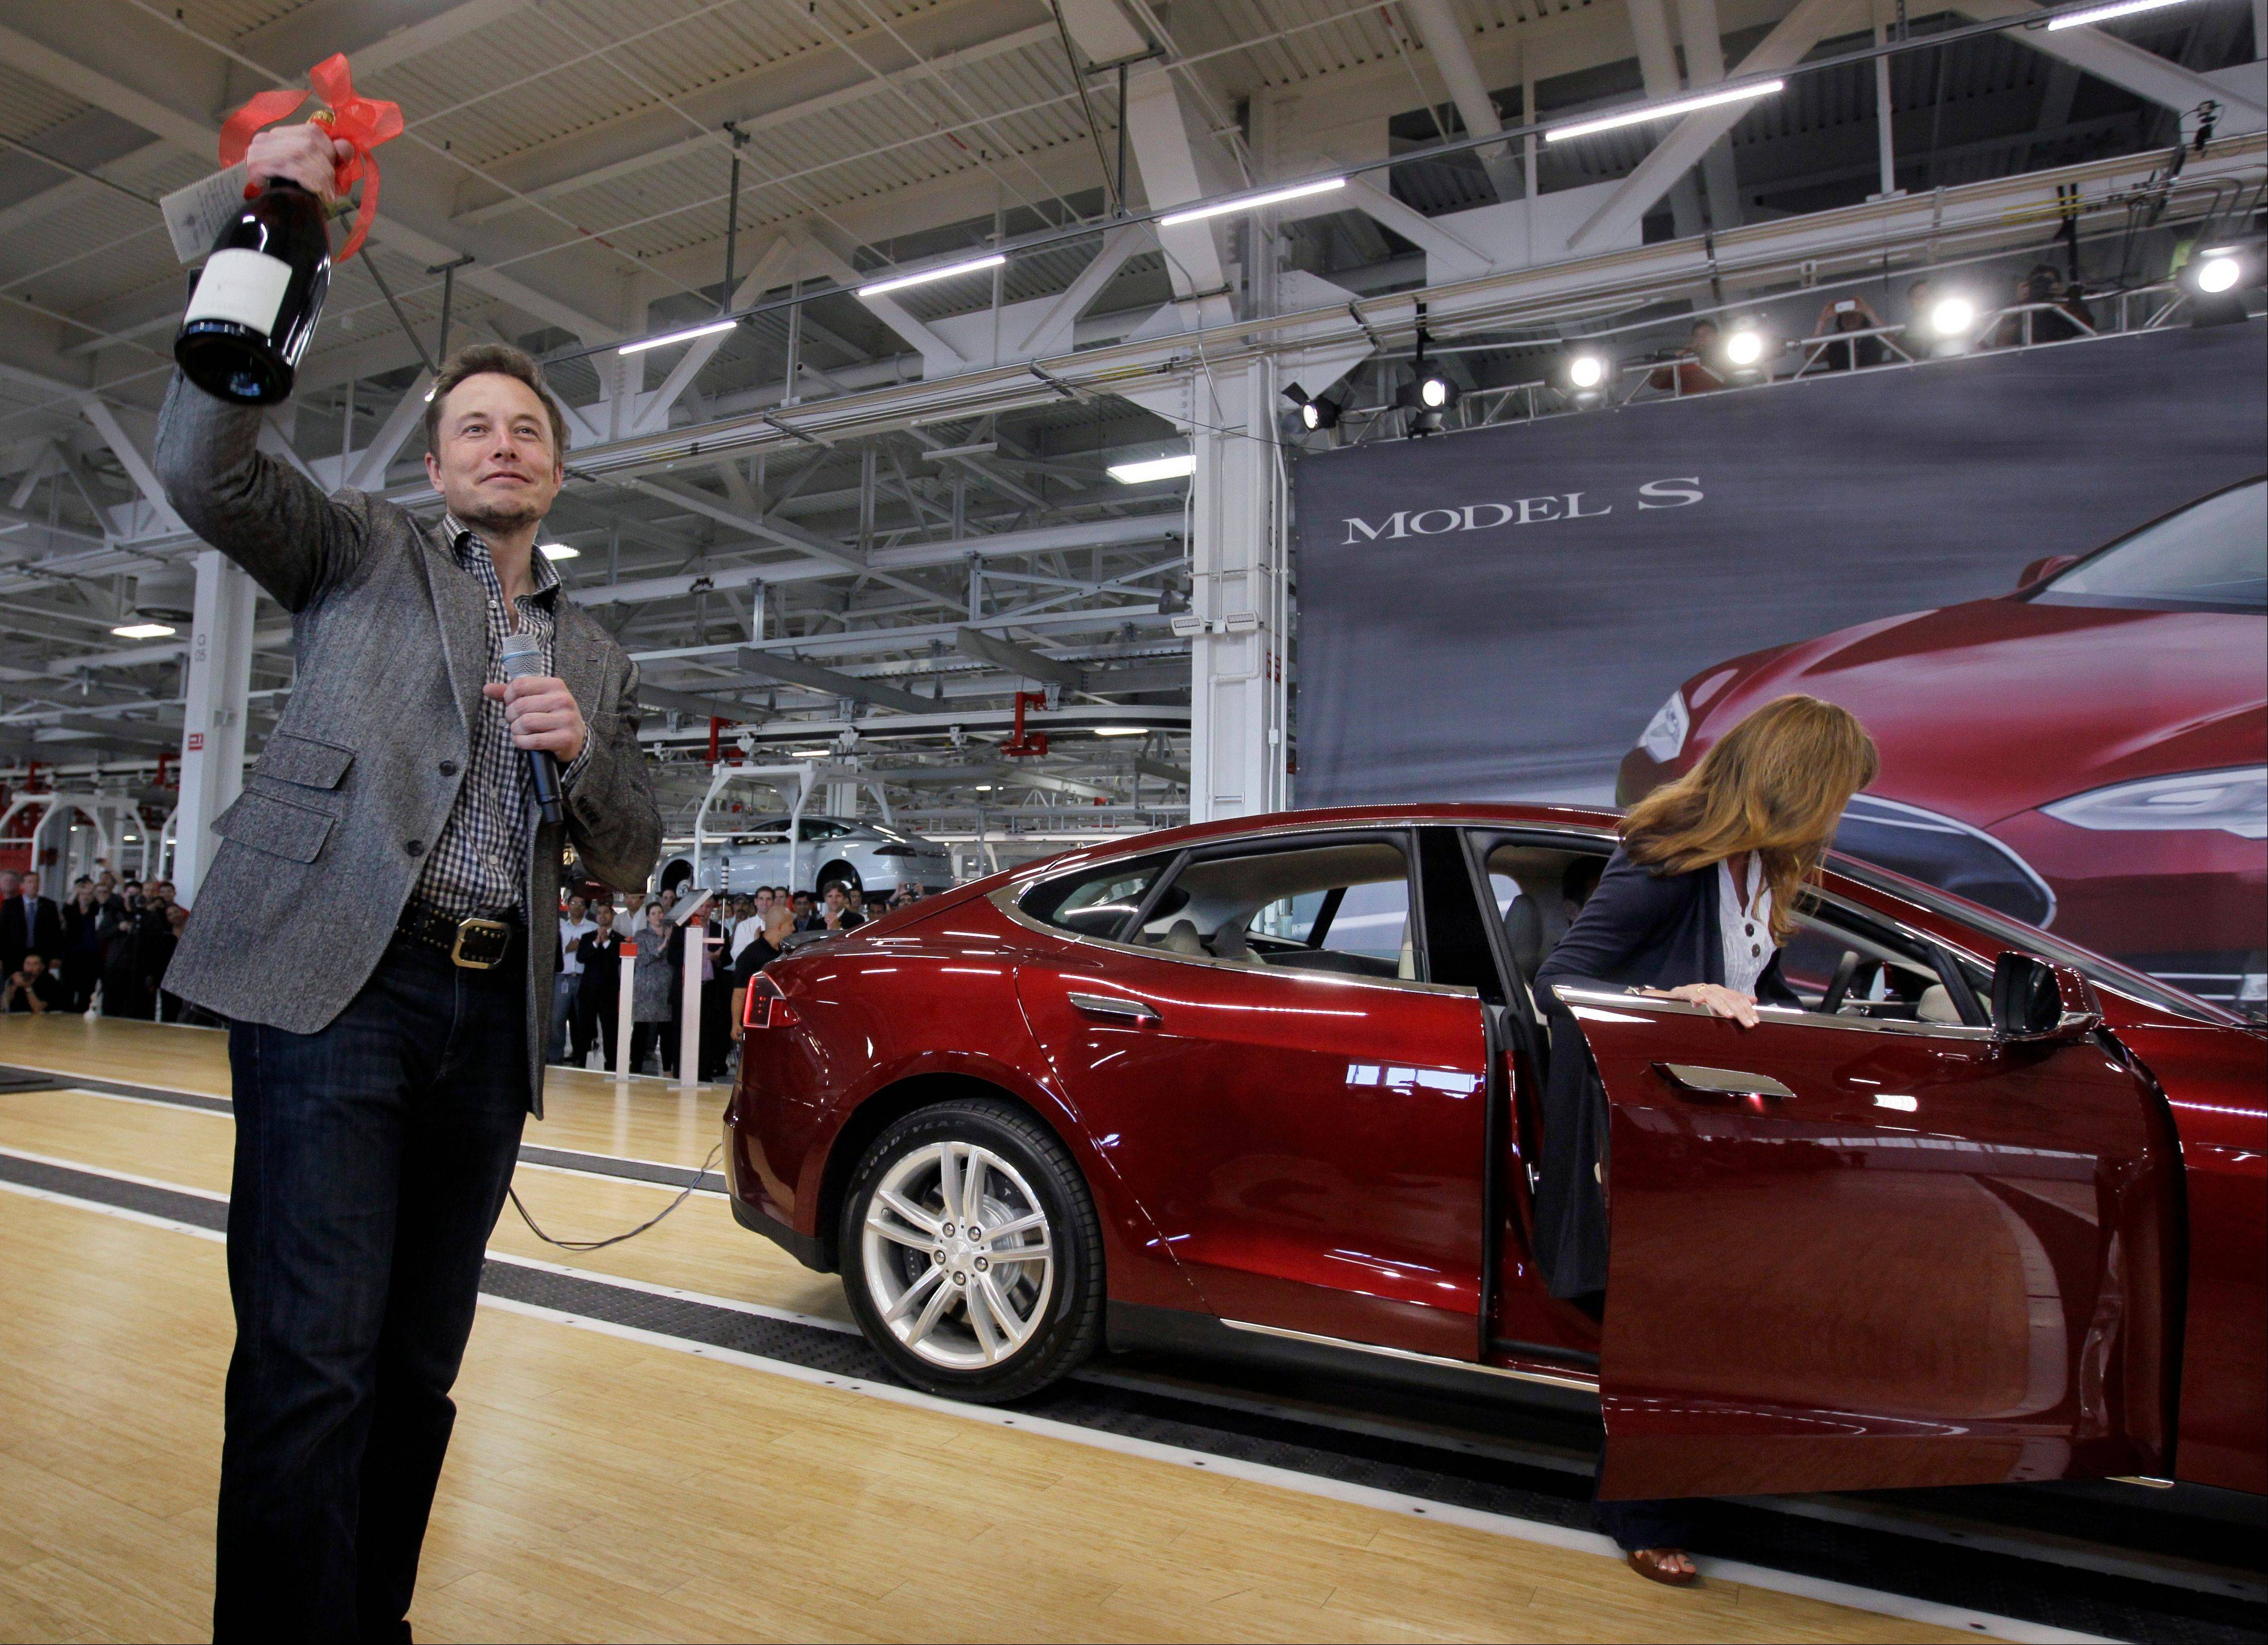 Tesla Motors Inc. CEO Elon Musk holds up a bottle of wine given as a gift from one of their first customers, right, during a rally at the Tesla factory in Fremont, Calif., on June 22. Tesla on Wednesday said that its second-quarter net loss nearly doubled as it invested heavily to launch its second vehicle, the Model S.